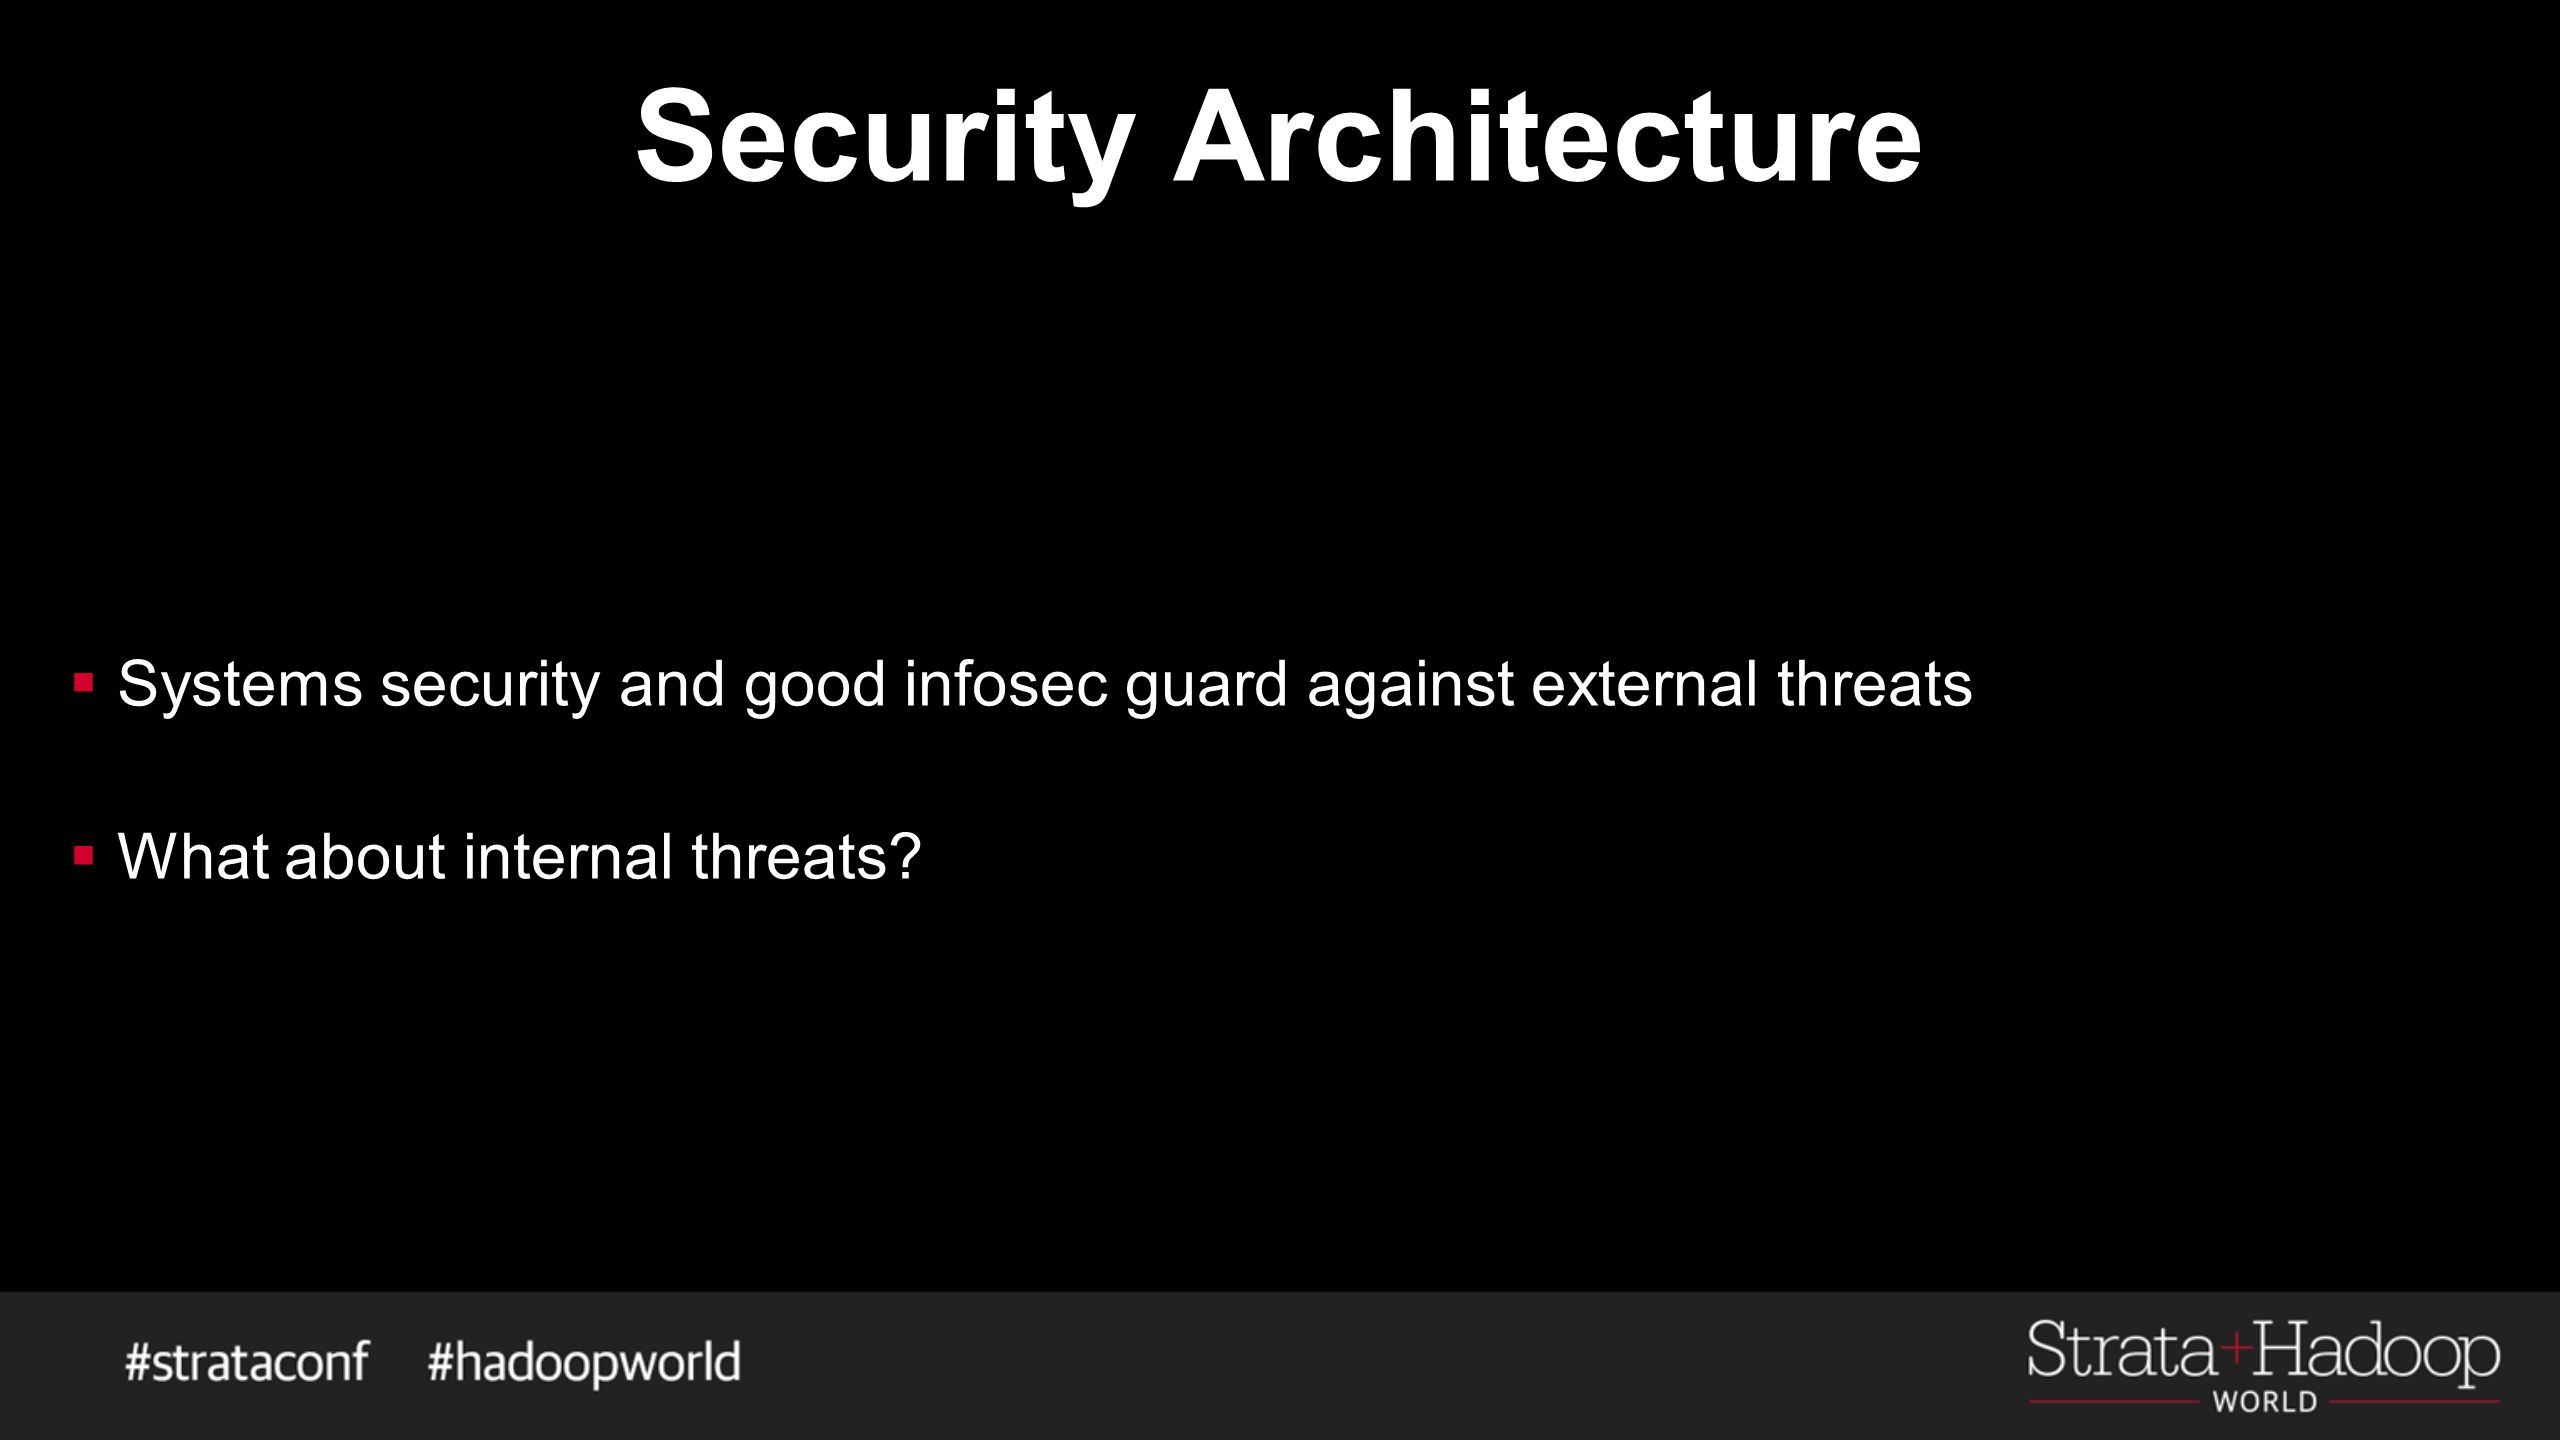  Systems security and good infosec guard against external threats  What about internal threats?